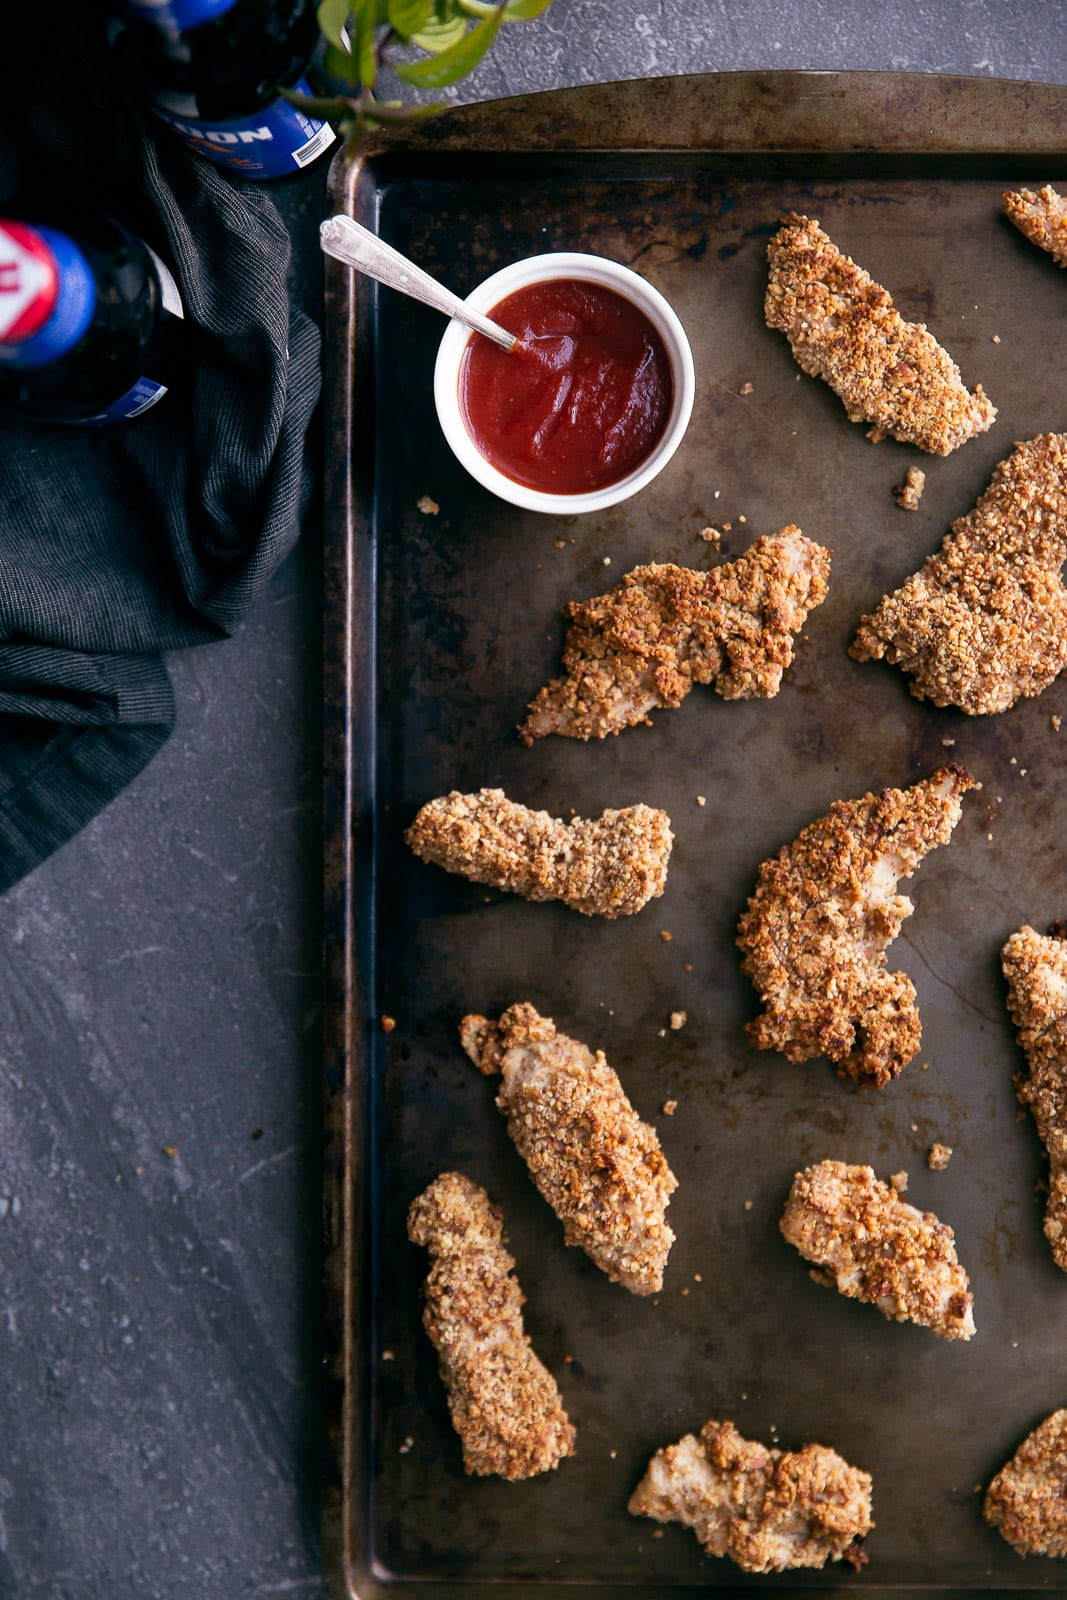 Wasabi-Almond Crusted Chicken Tenders on baking tray